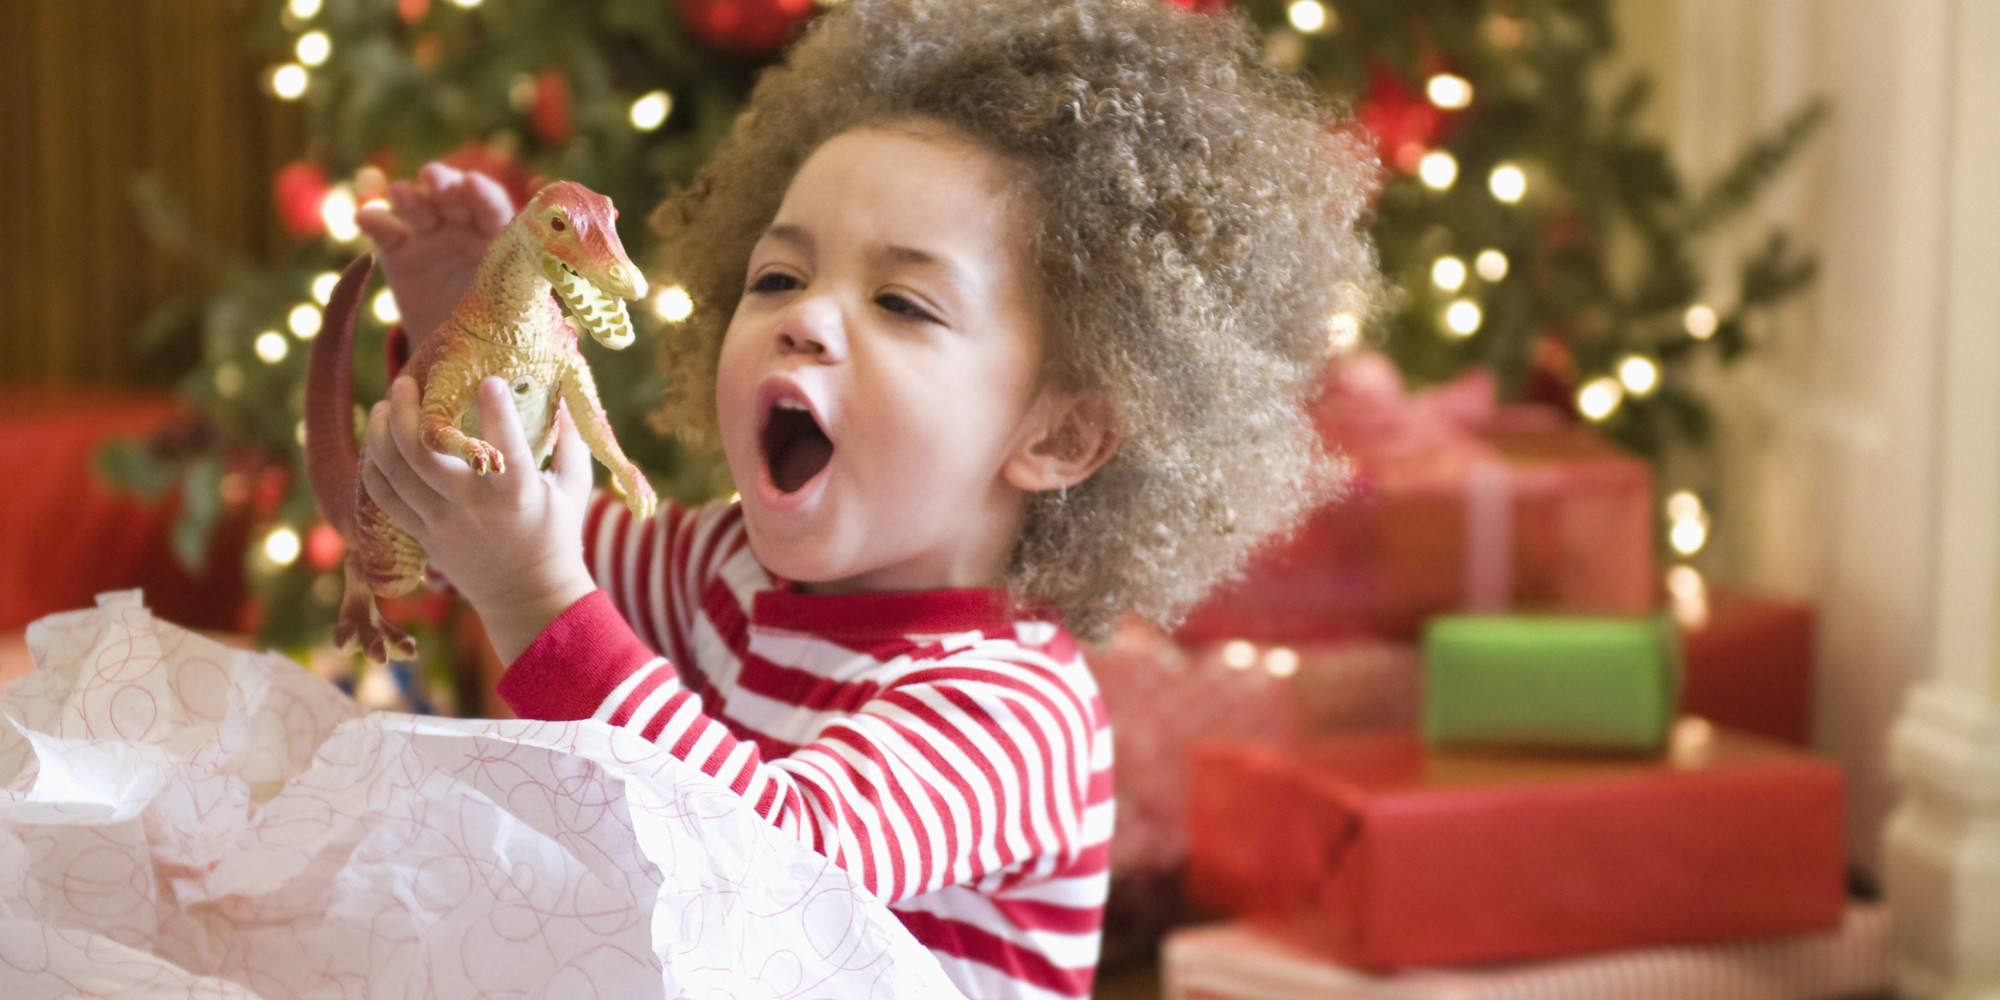 Mixed race boy playing with Christmas gift